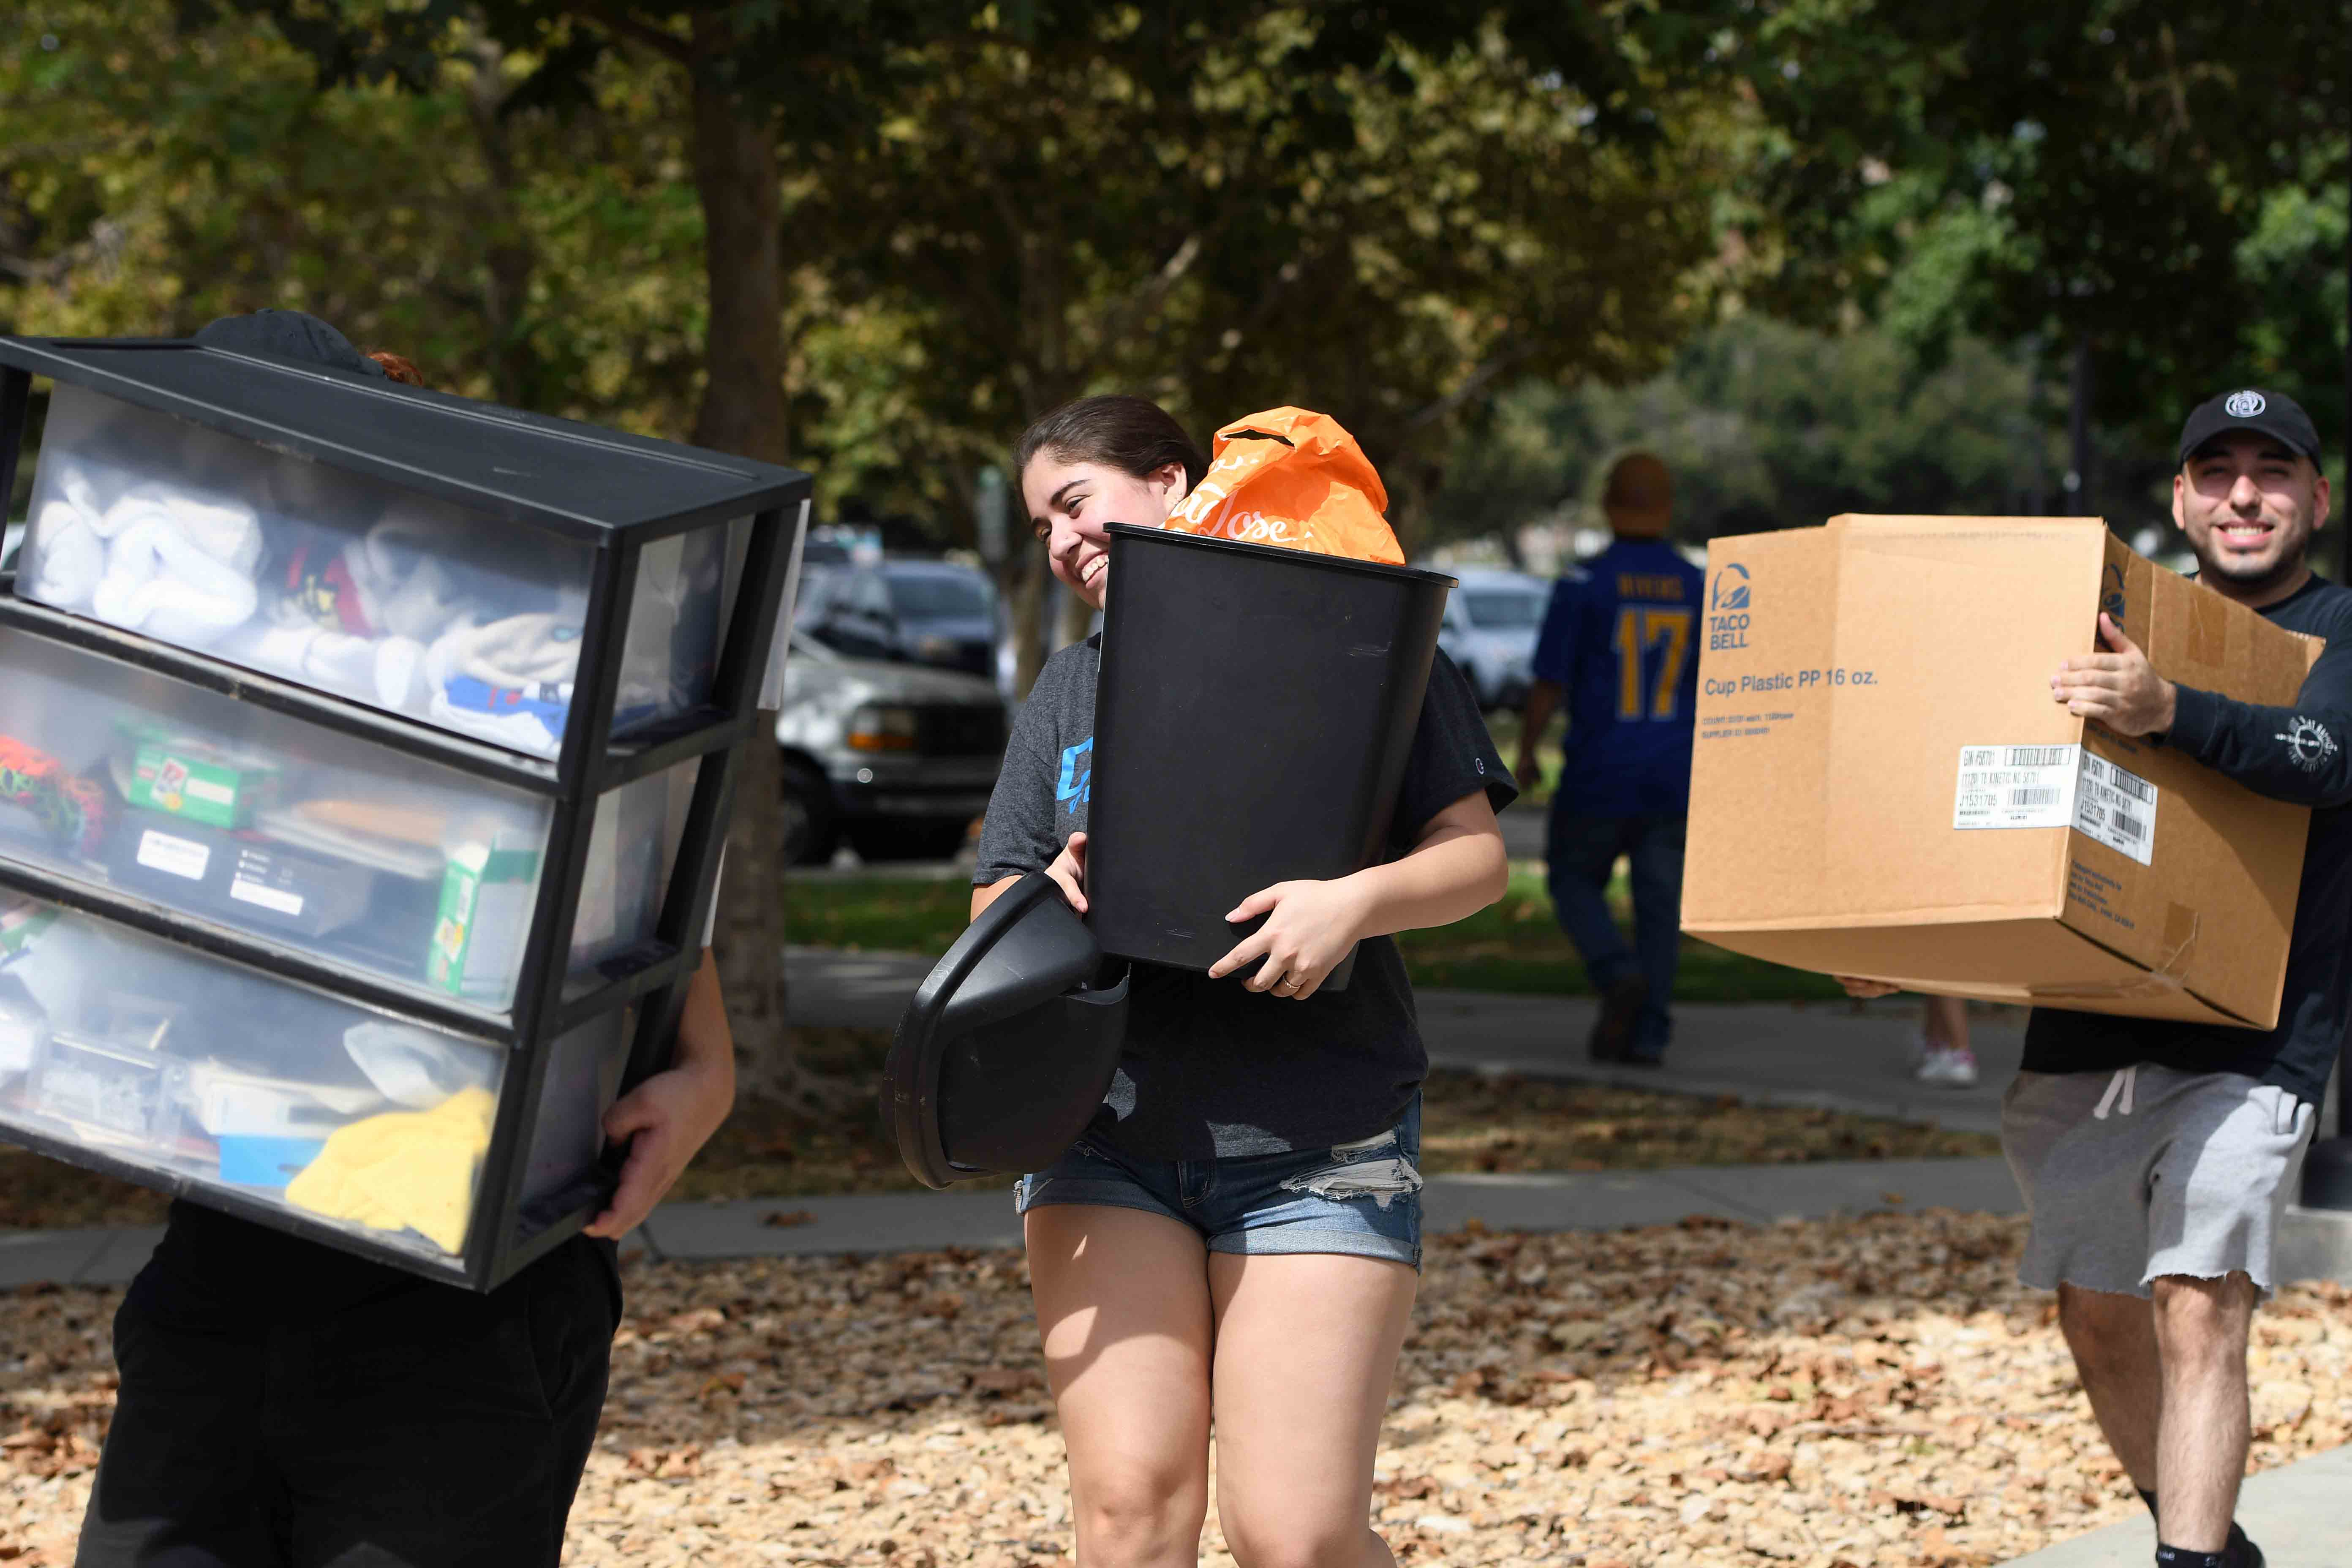 Move-In Day heralded the start of the 2019-20 academic year. Classes begin Sept. 19.